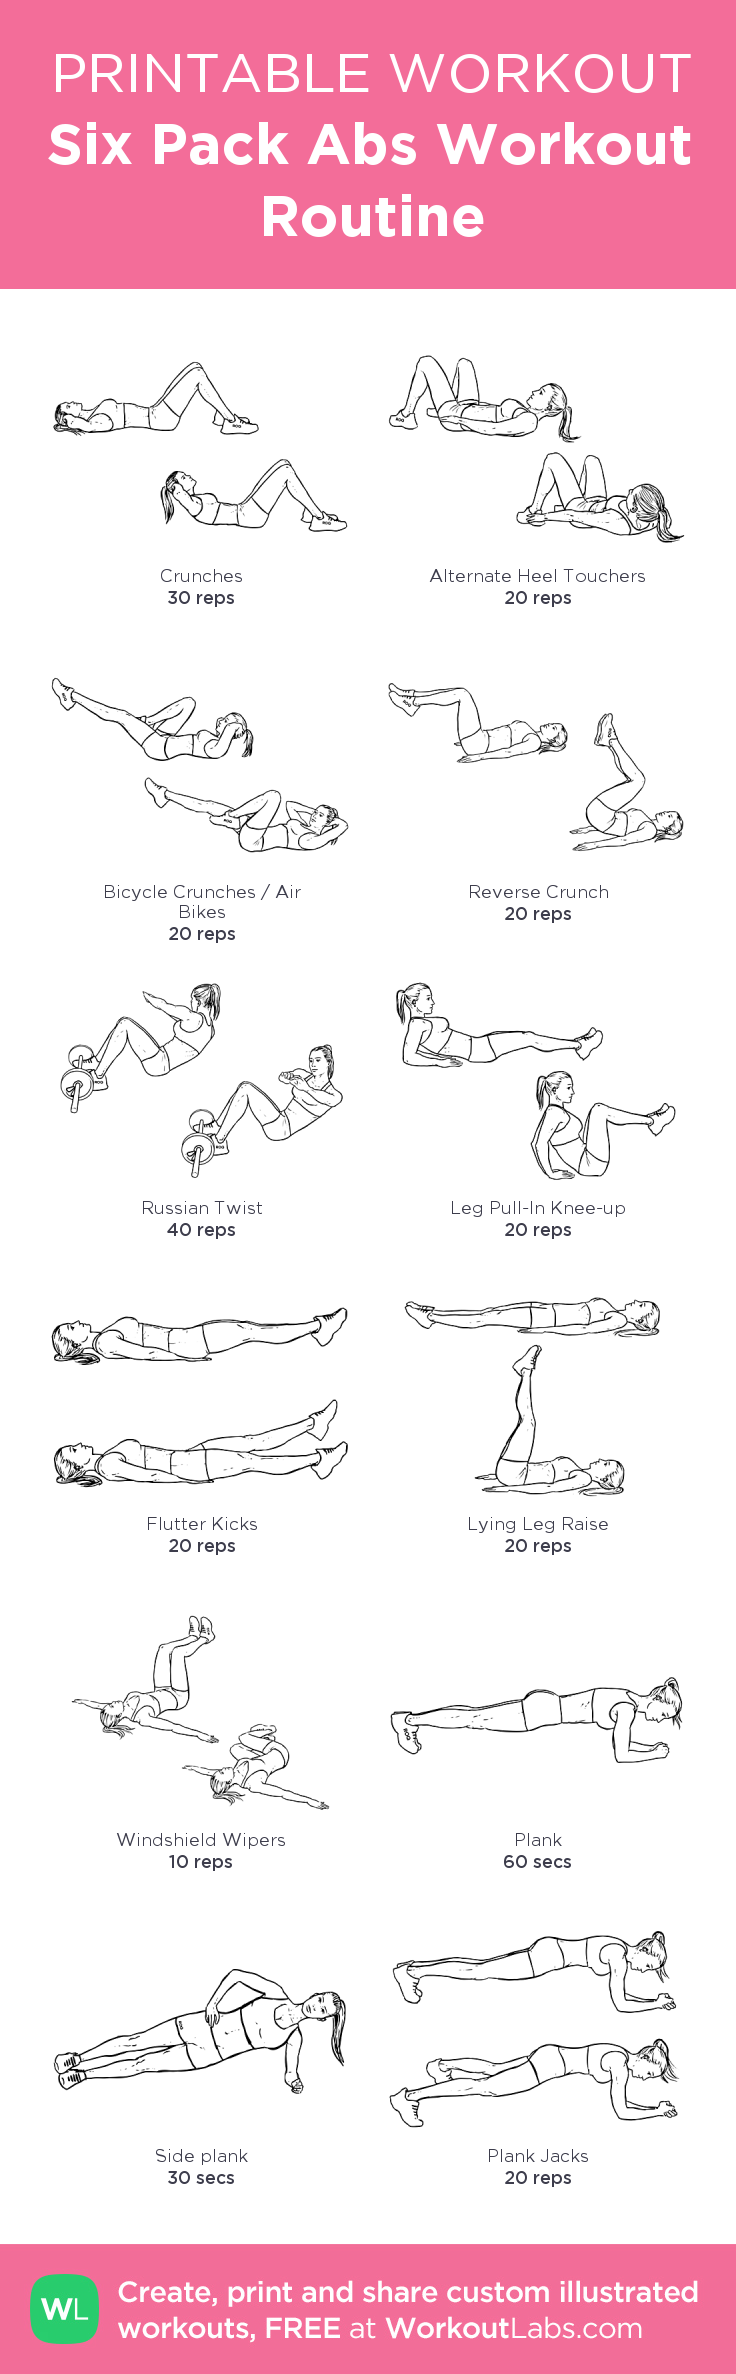 Build Killer Abs With This 10 Min Workout Health Fitness Minute Timer Circuit Motivation Description Six Pack Gain Muscle Or Weight Loss These Plan Is Great For Beginners Men And Women